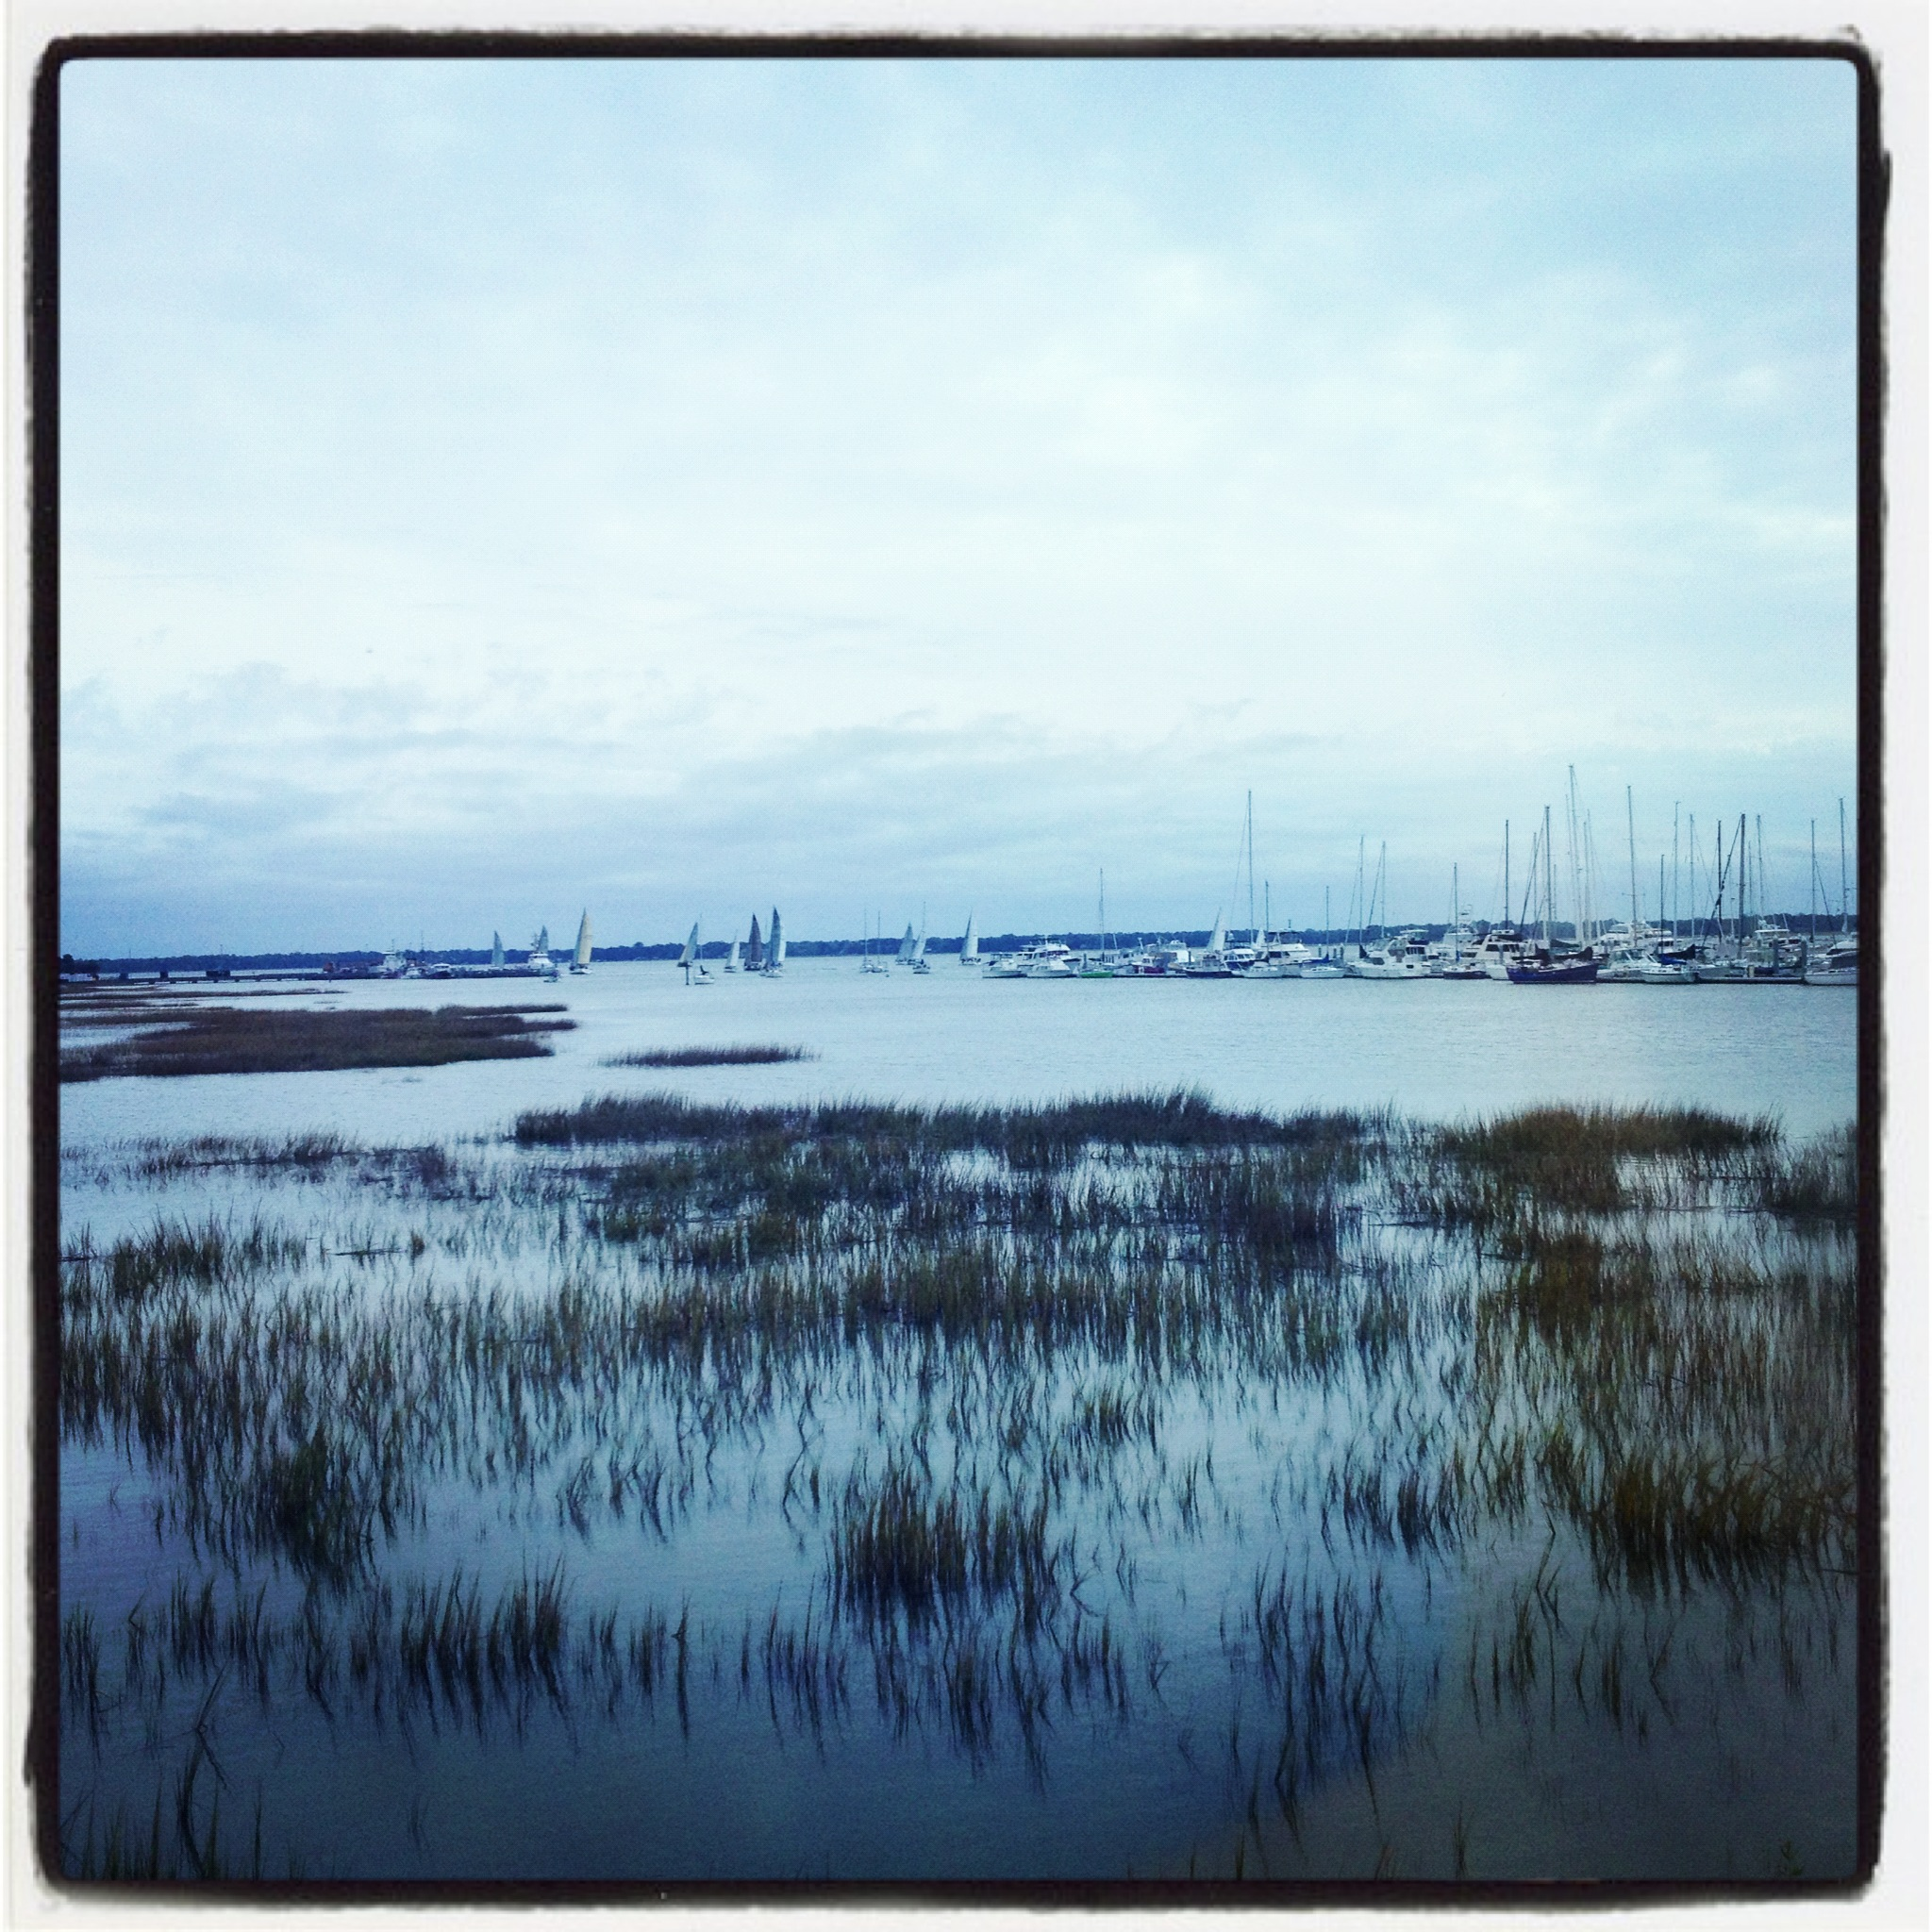 charleston-city-marina-south-carolina.jpg